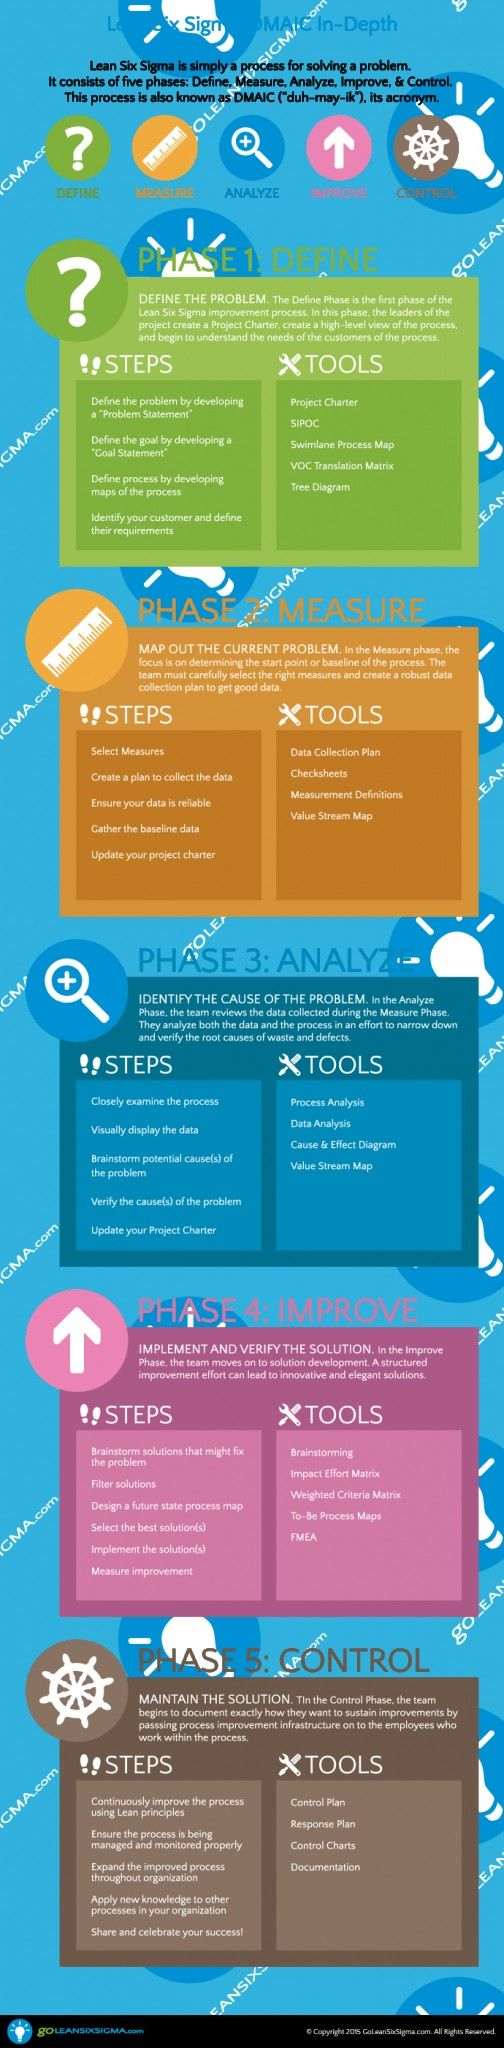 12 best six sigma images on pinterest project management lean infographic lean six sigma step by step dmaic 1betcityfo Images